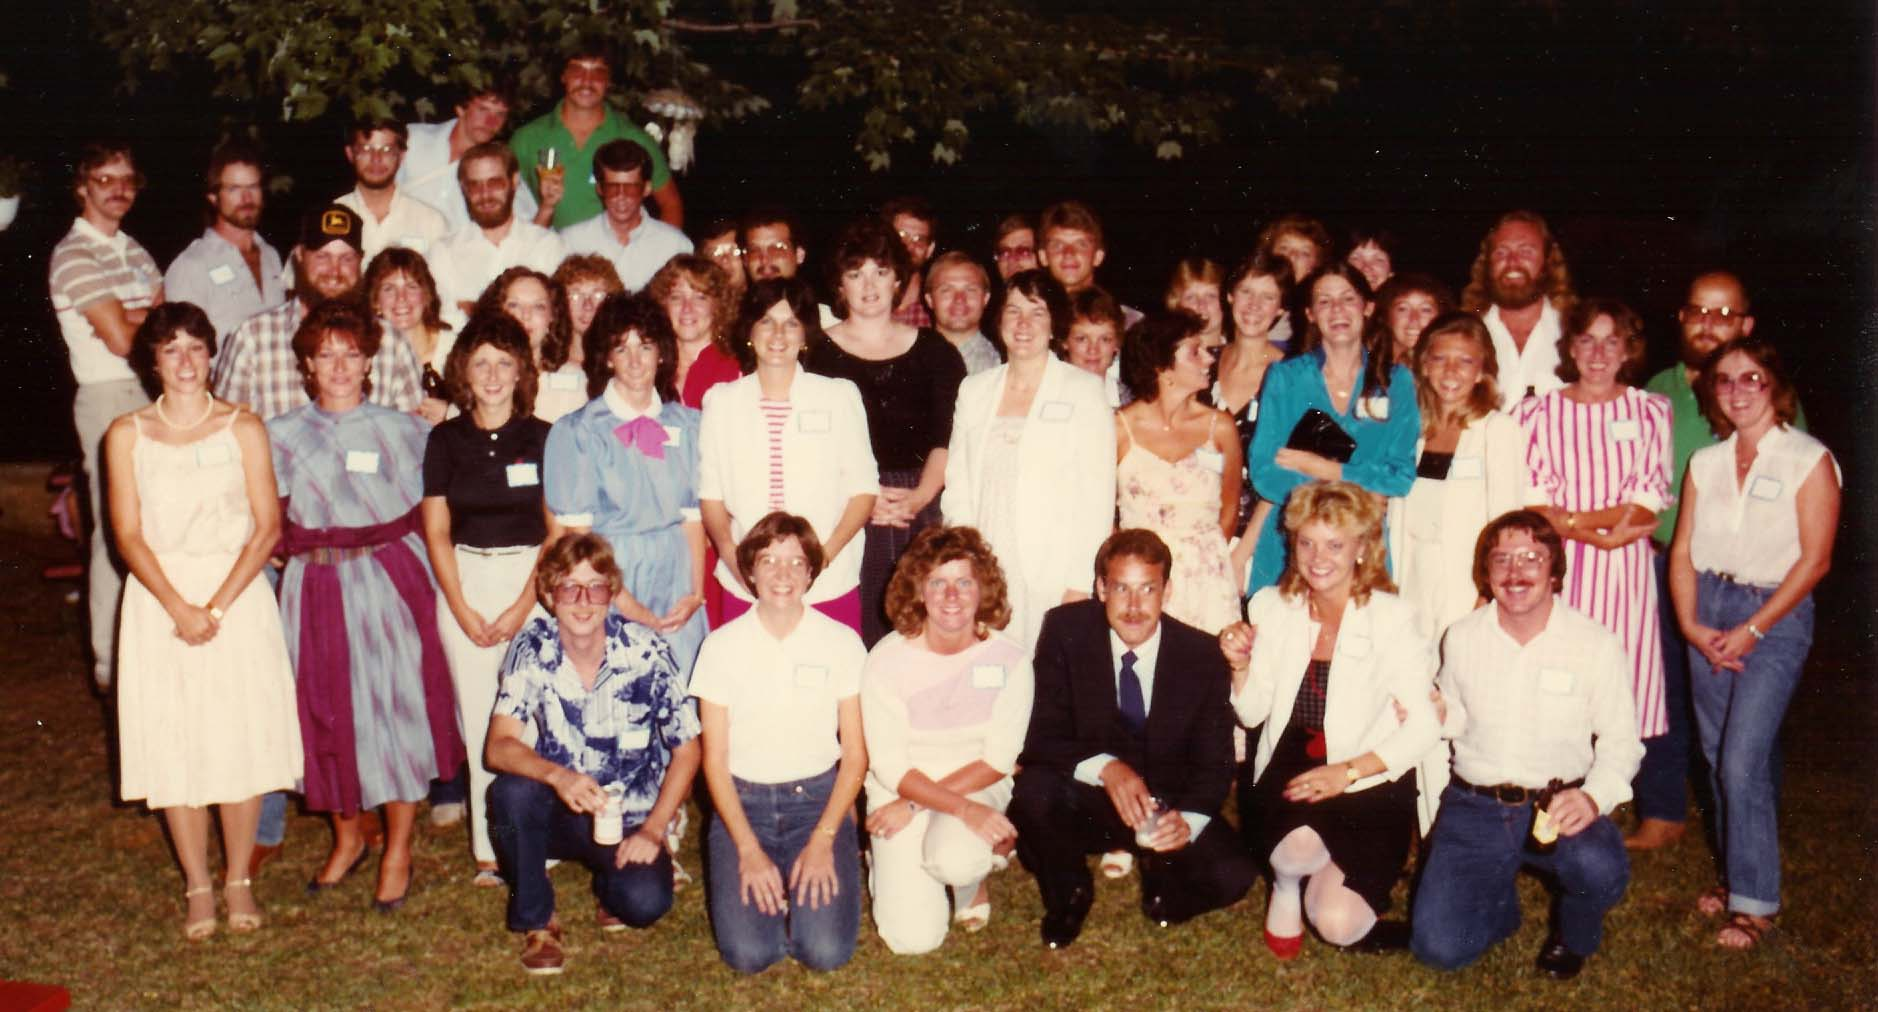 AHS Class of 73 in 1983 image